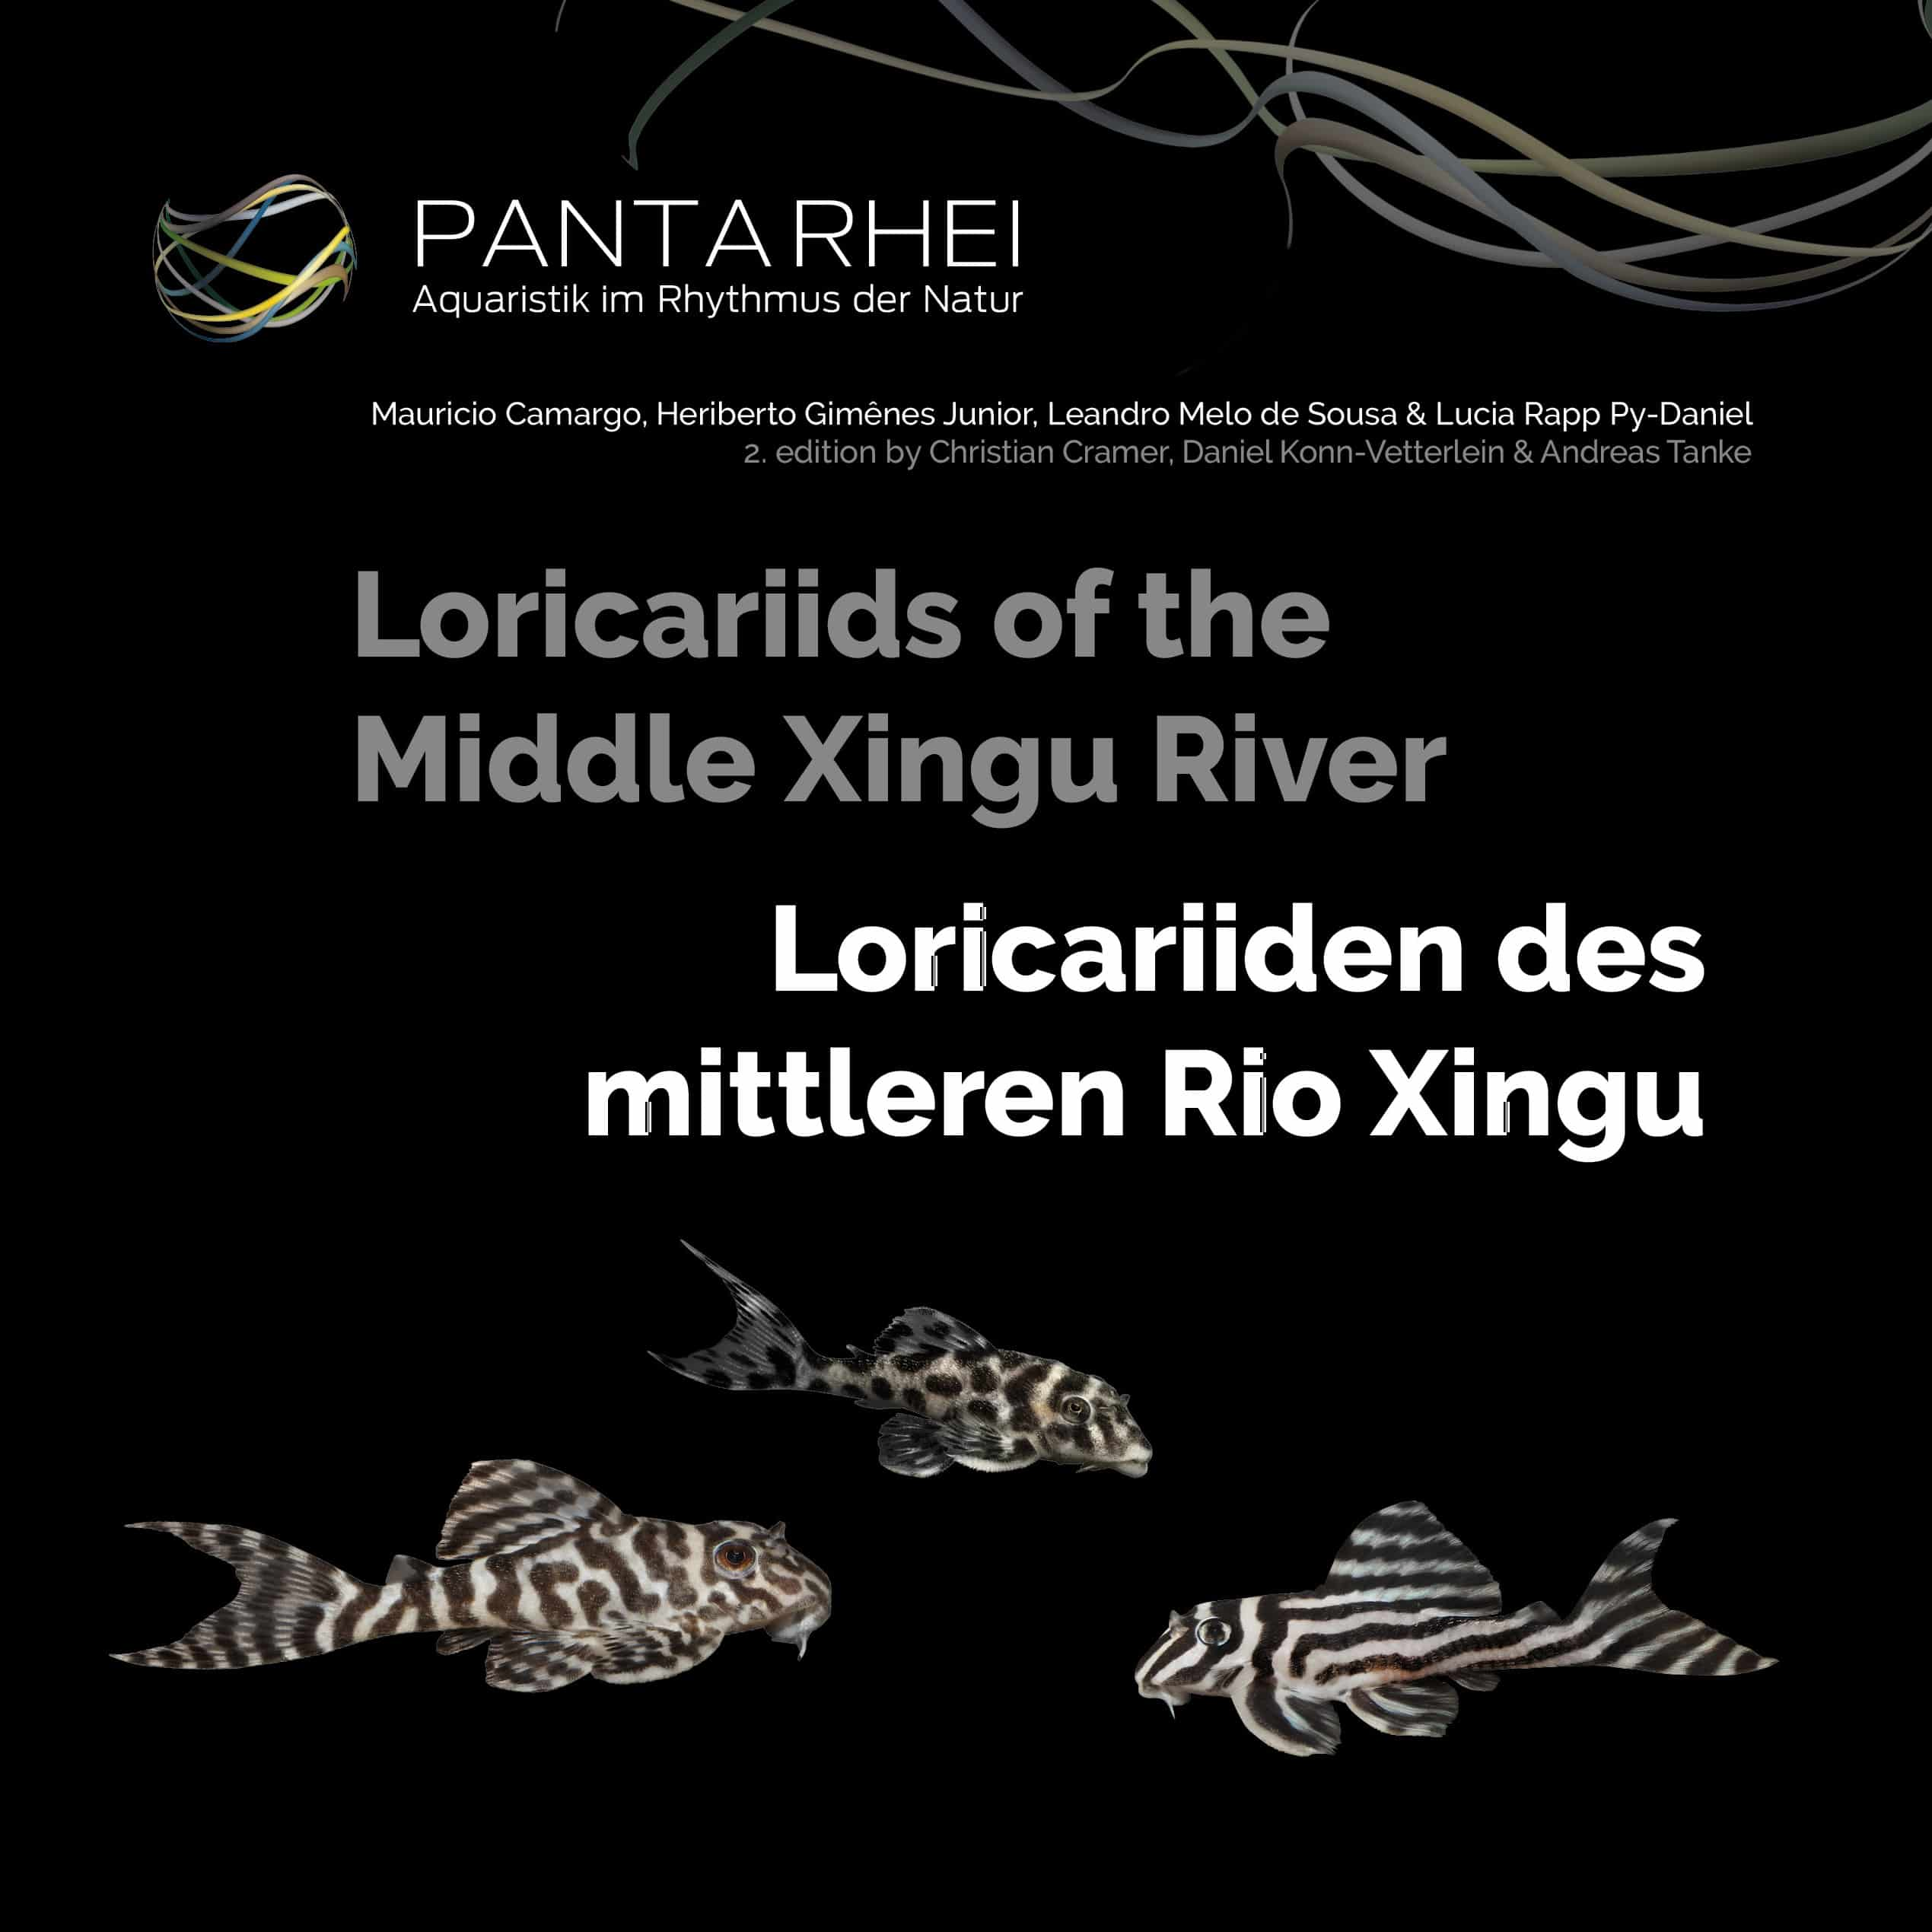 Cover: Loricariids of the Middle Xingu River